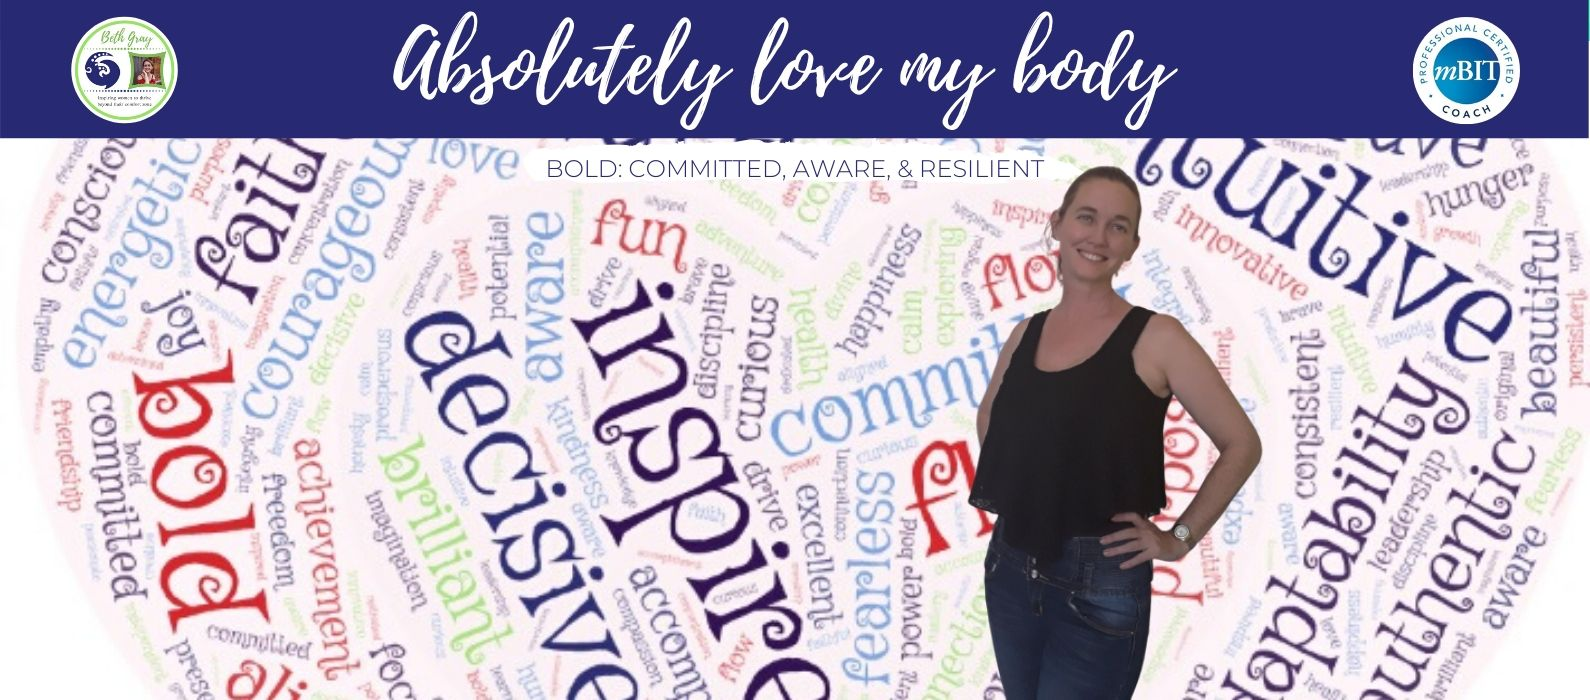 absolutely love my body, learning to love myself, ideal weight, inner energy, inner eating, emotional eating, stuffing down emotions, creativity, courage, bold, intuitive, committed, in flow, courageous, aware, resilient